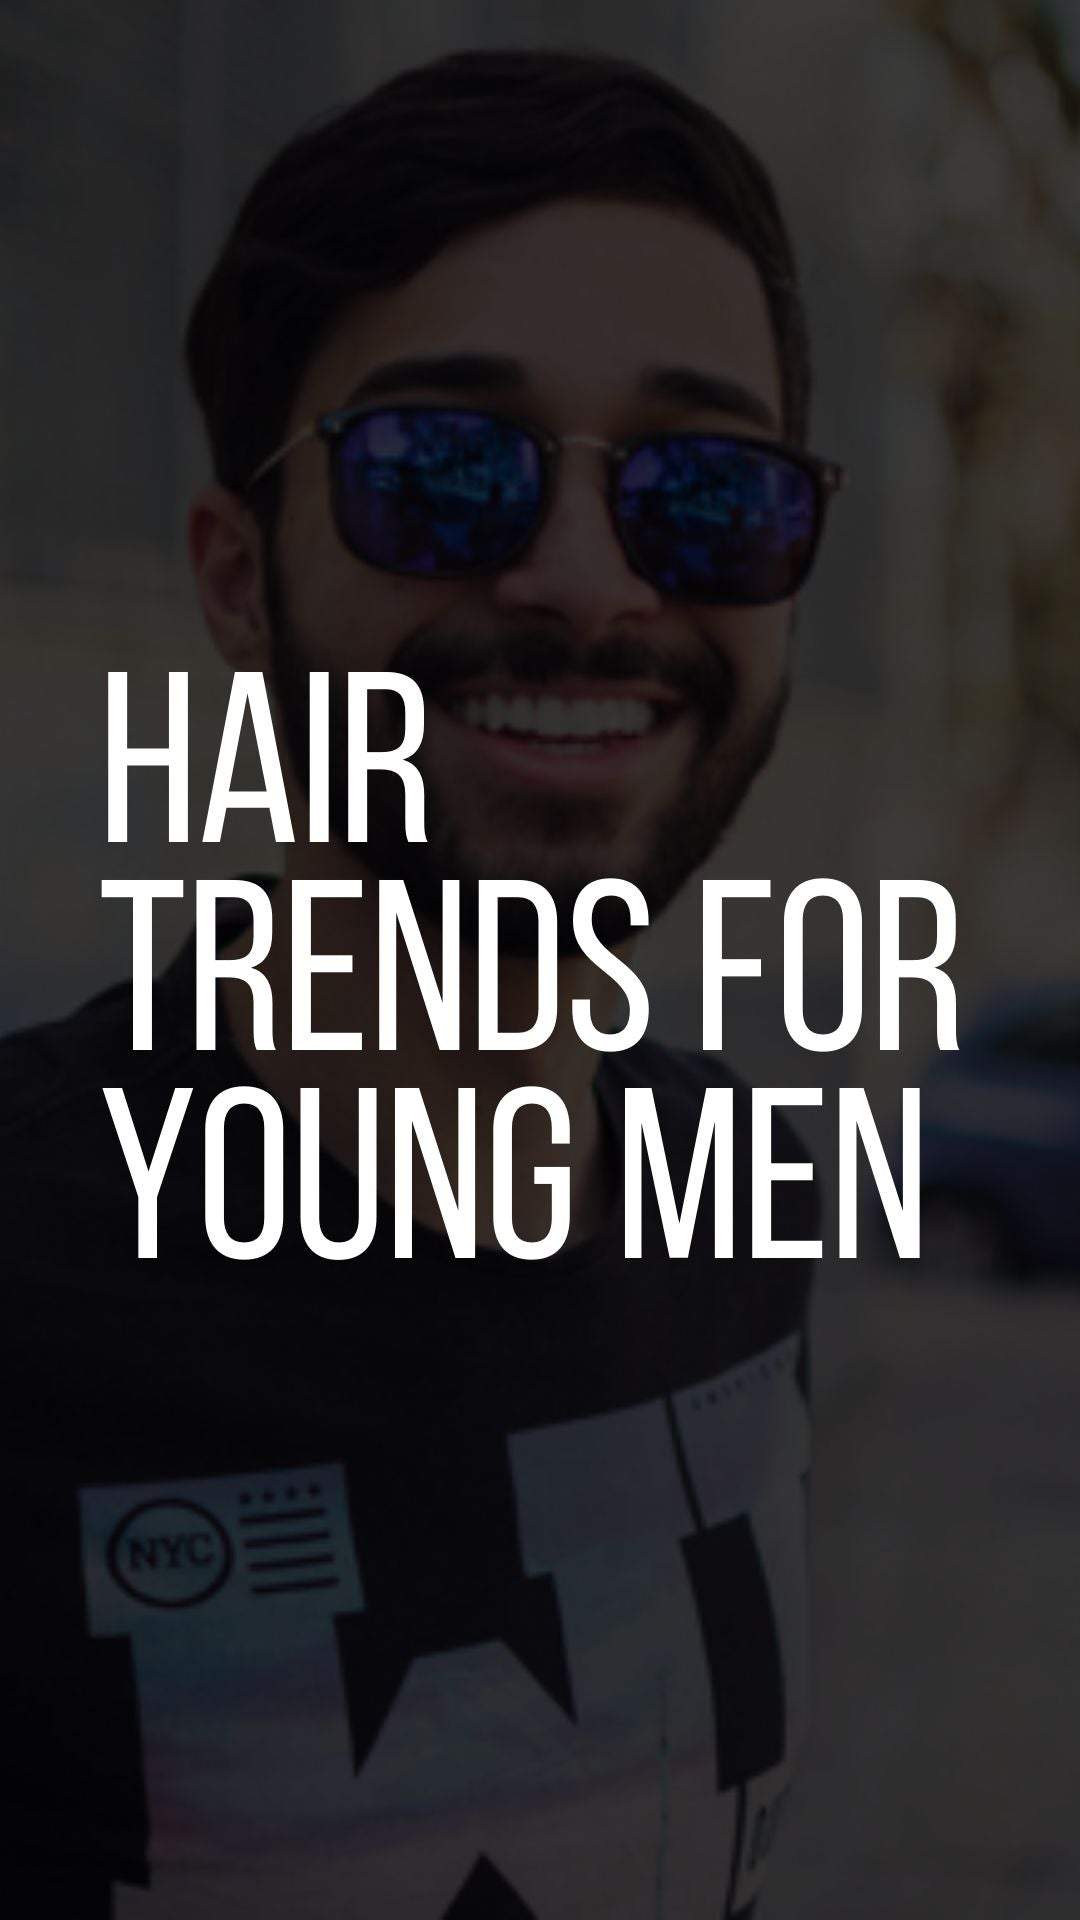 Hair Trends for Young Men